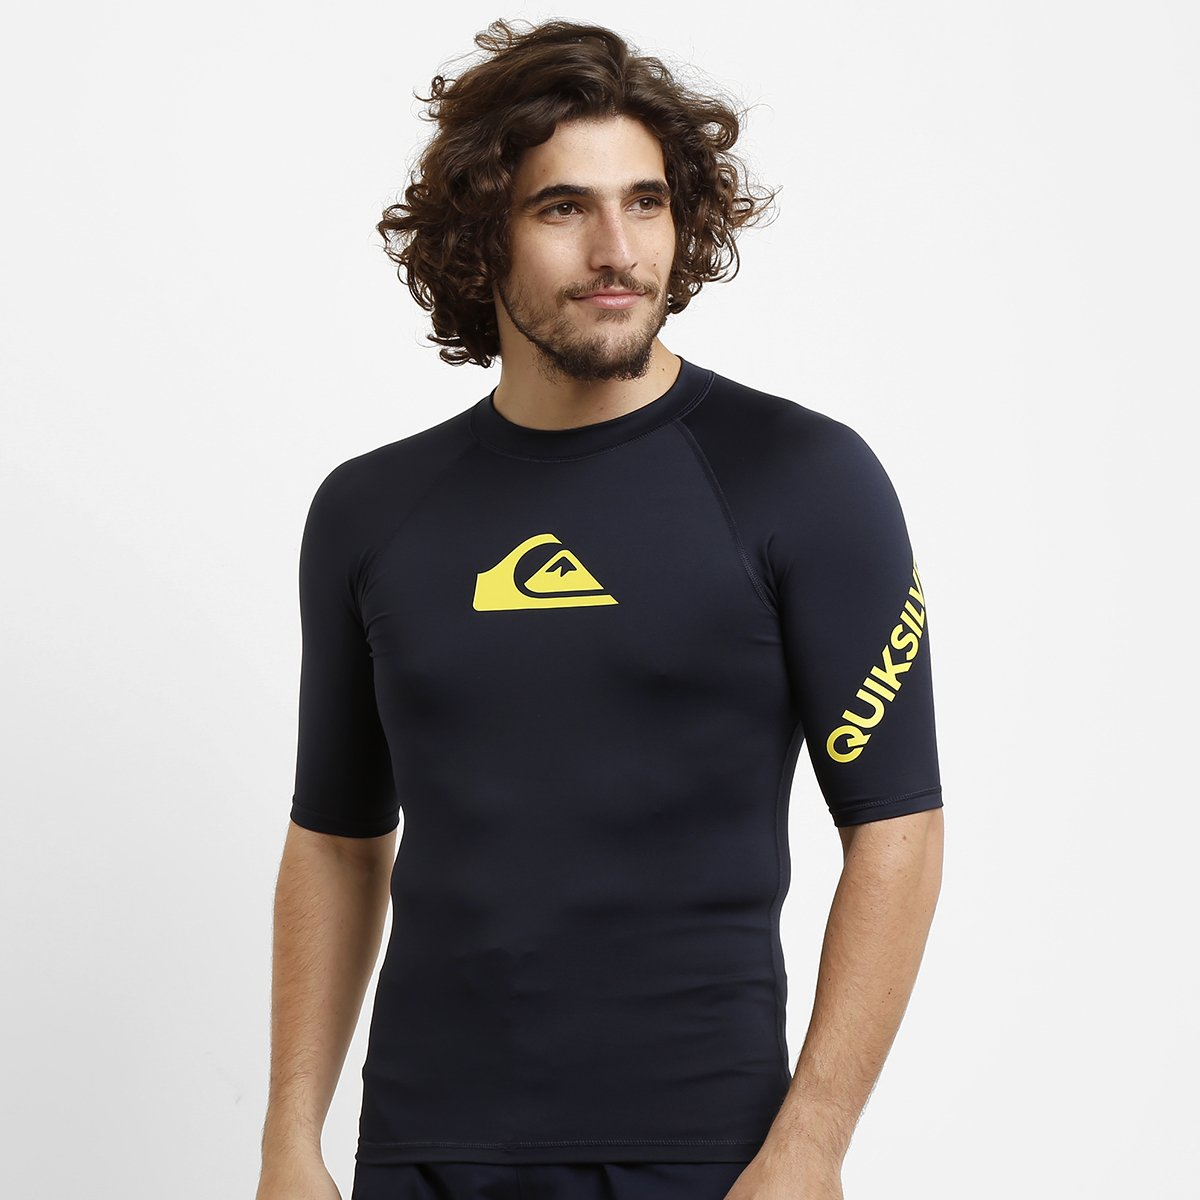 ae971d6c62370 Camiseta Quiksilver All Time - Compre Agora   Netshoes